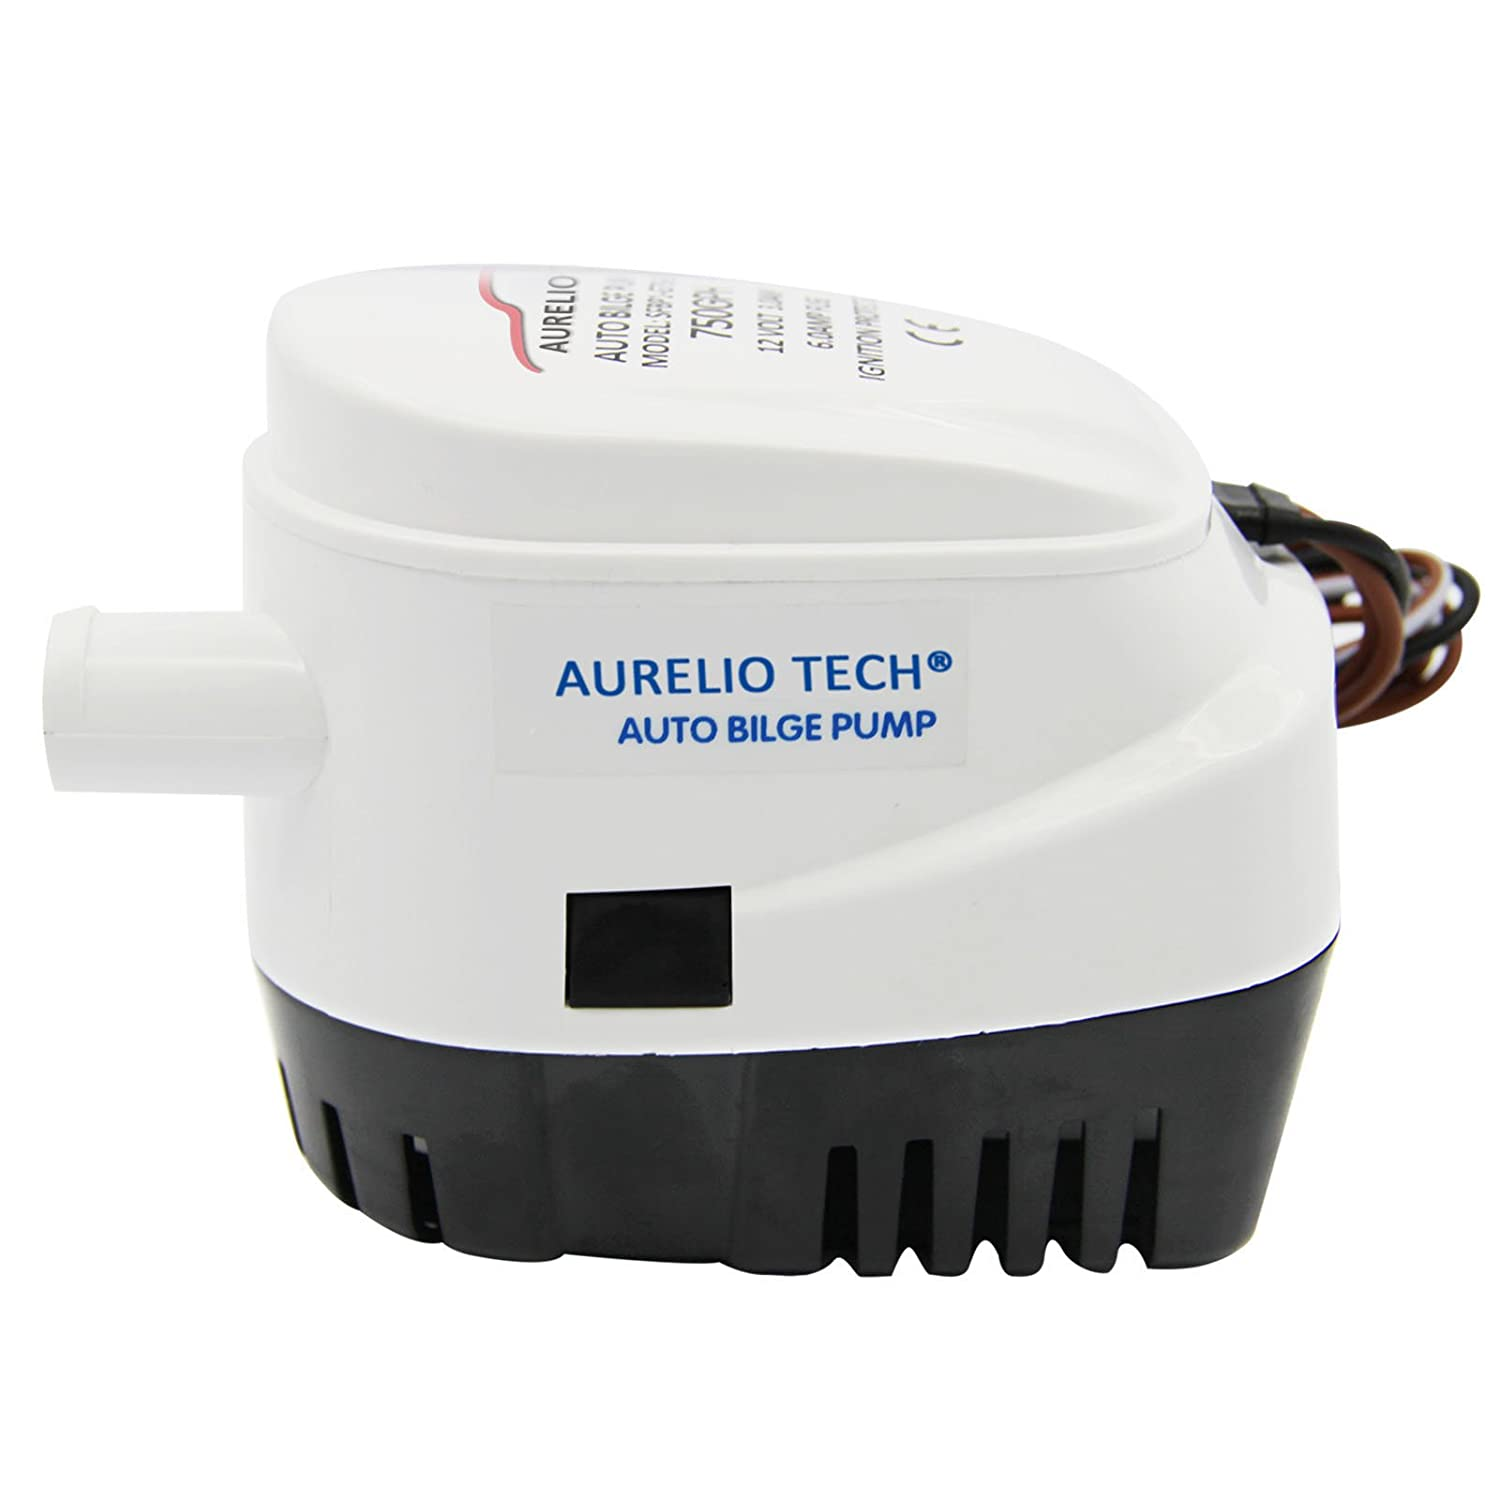 61X30Rmk3NL._SL1500_ amazon com aurelio tech 12v automatic submersible boat bilge seaflo automatic bilge pump wiring diagram at couponss.co